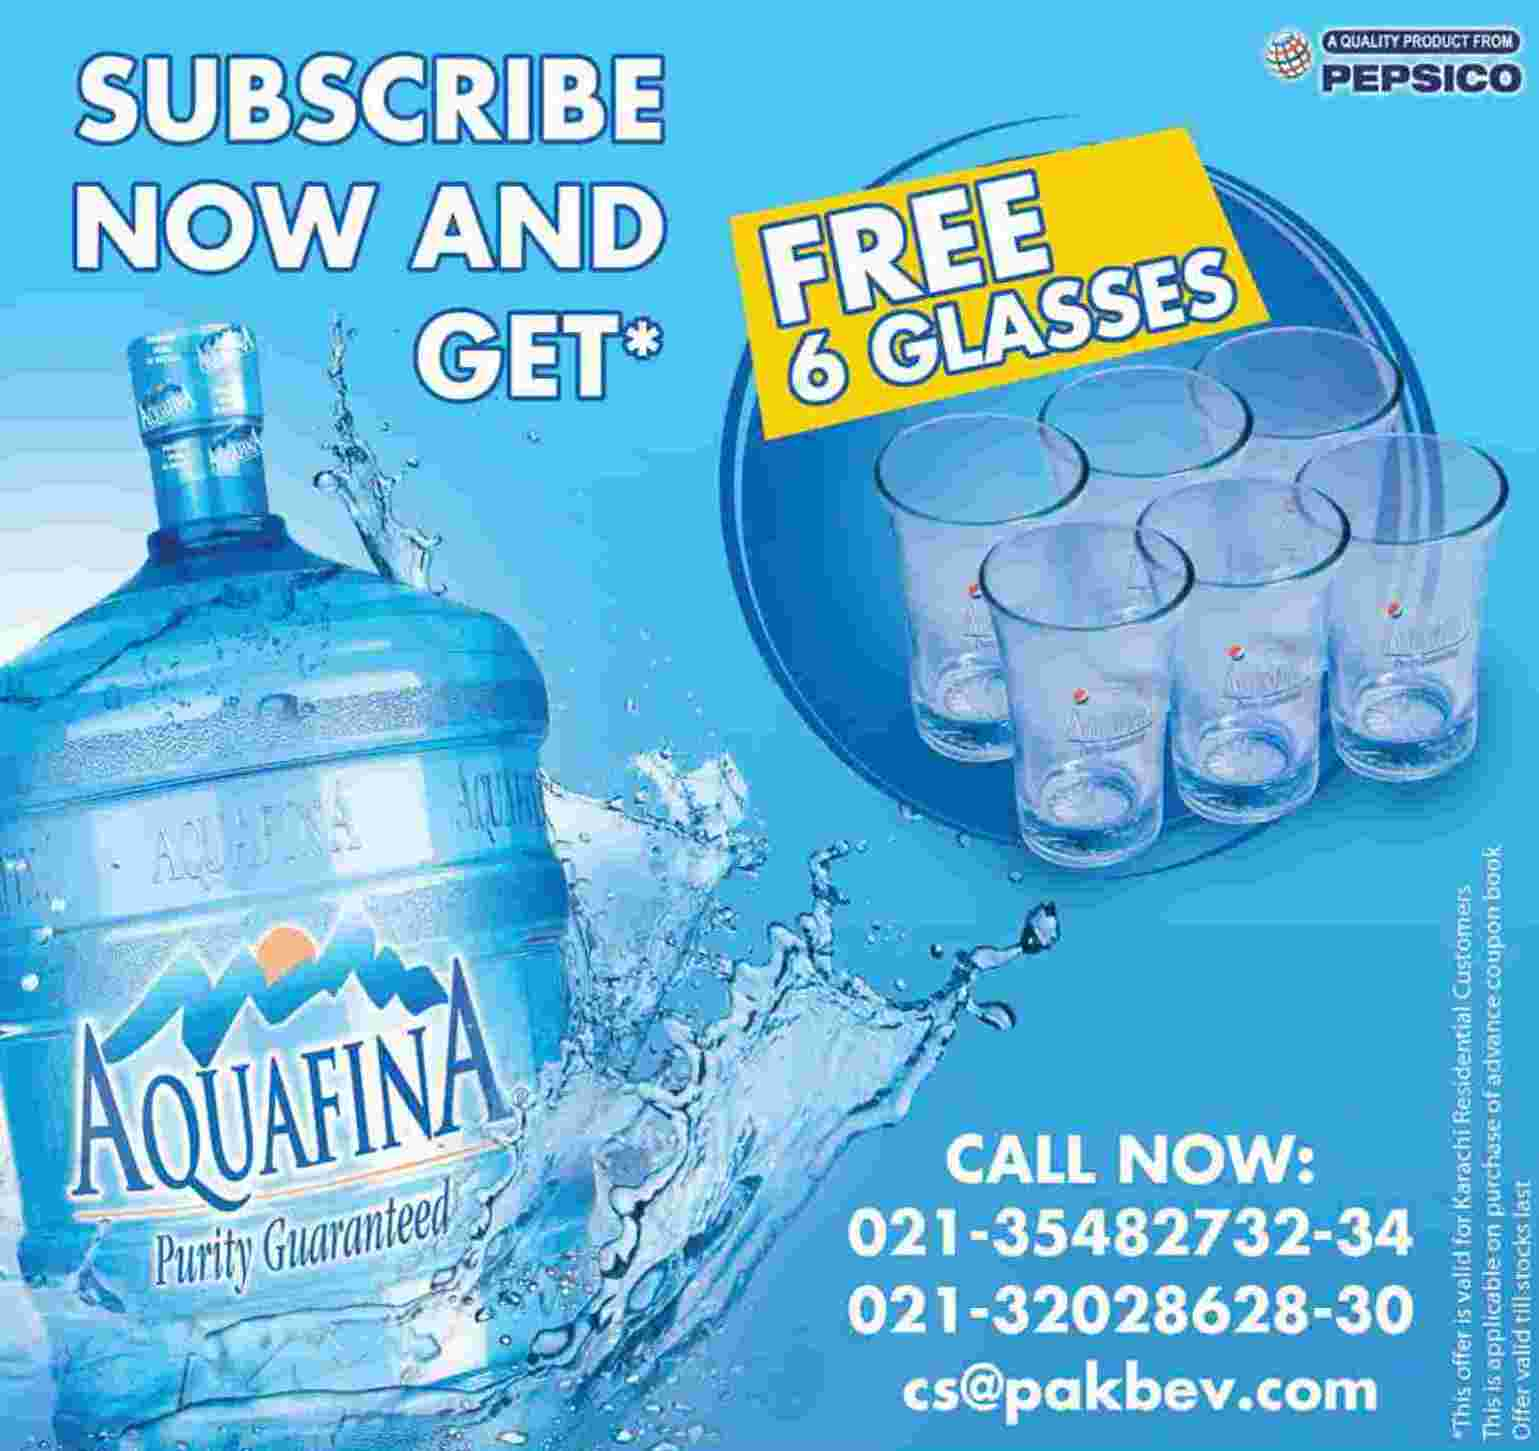 Aquafina Drinking Water Purity Guaranteed Subscribe Now And Get